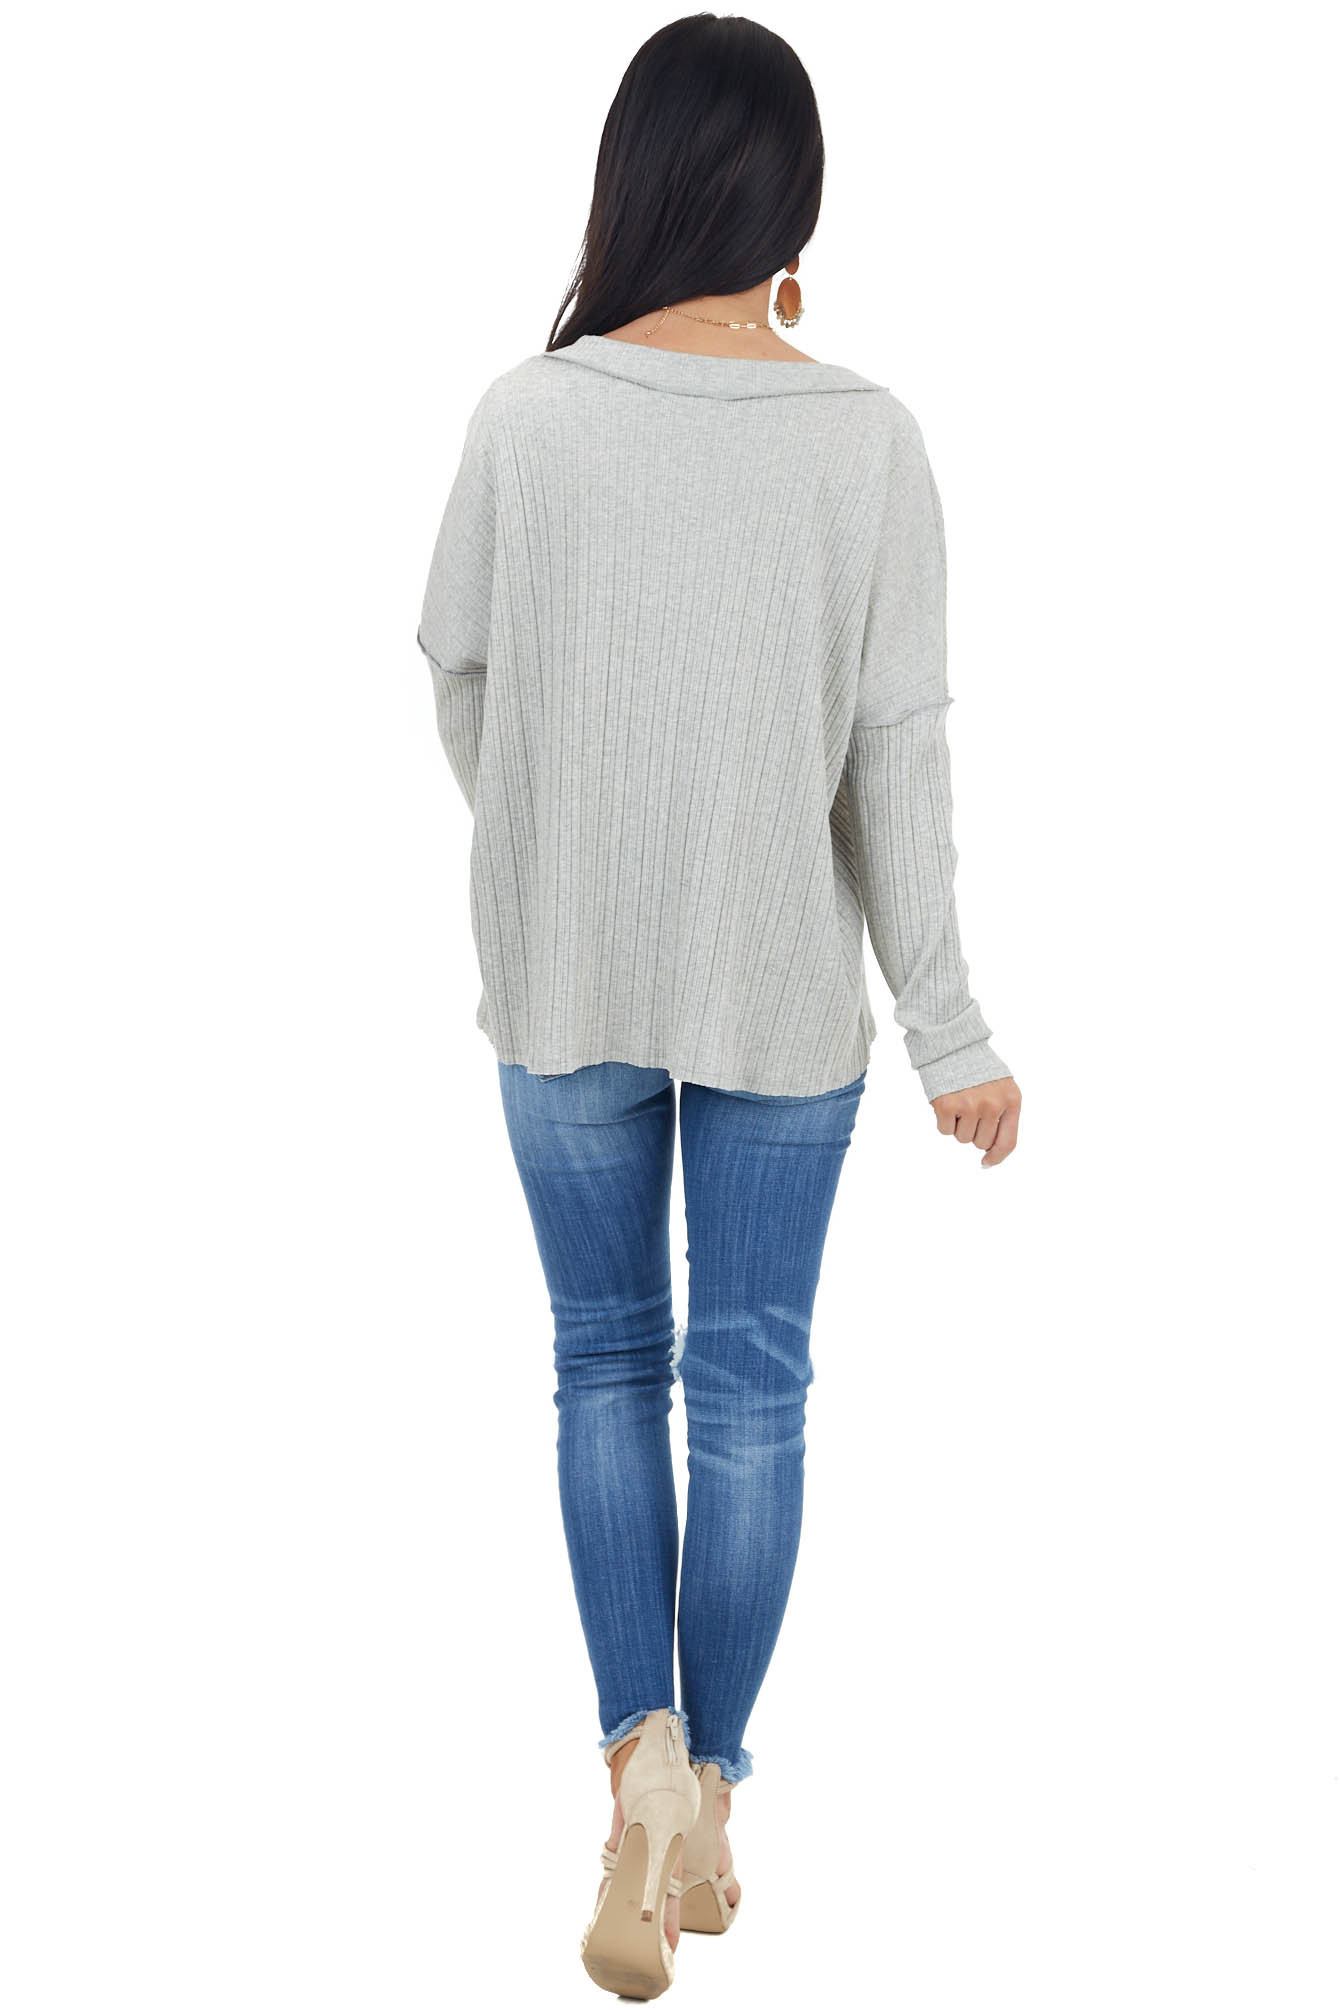 Heather Grey Variegated Ribbed Knit Long Sleeve V Neck Top